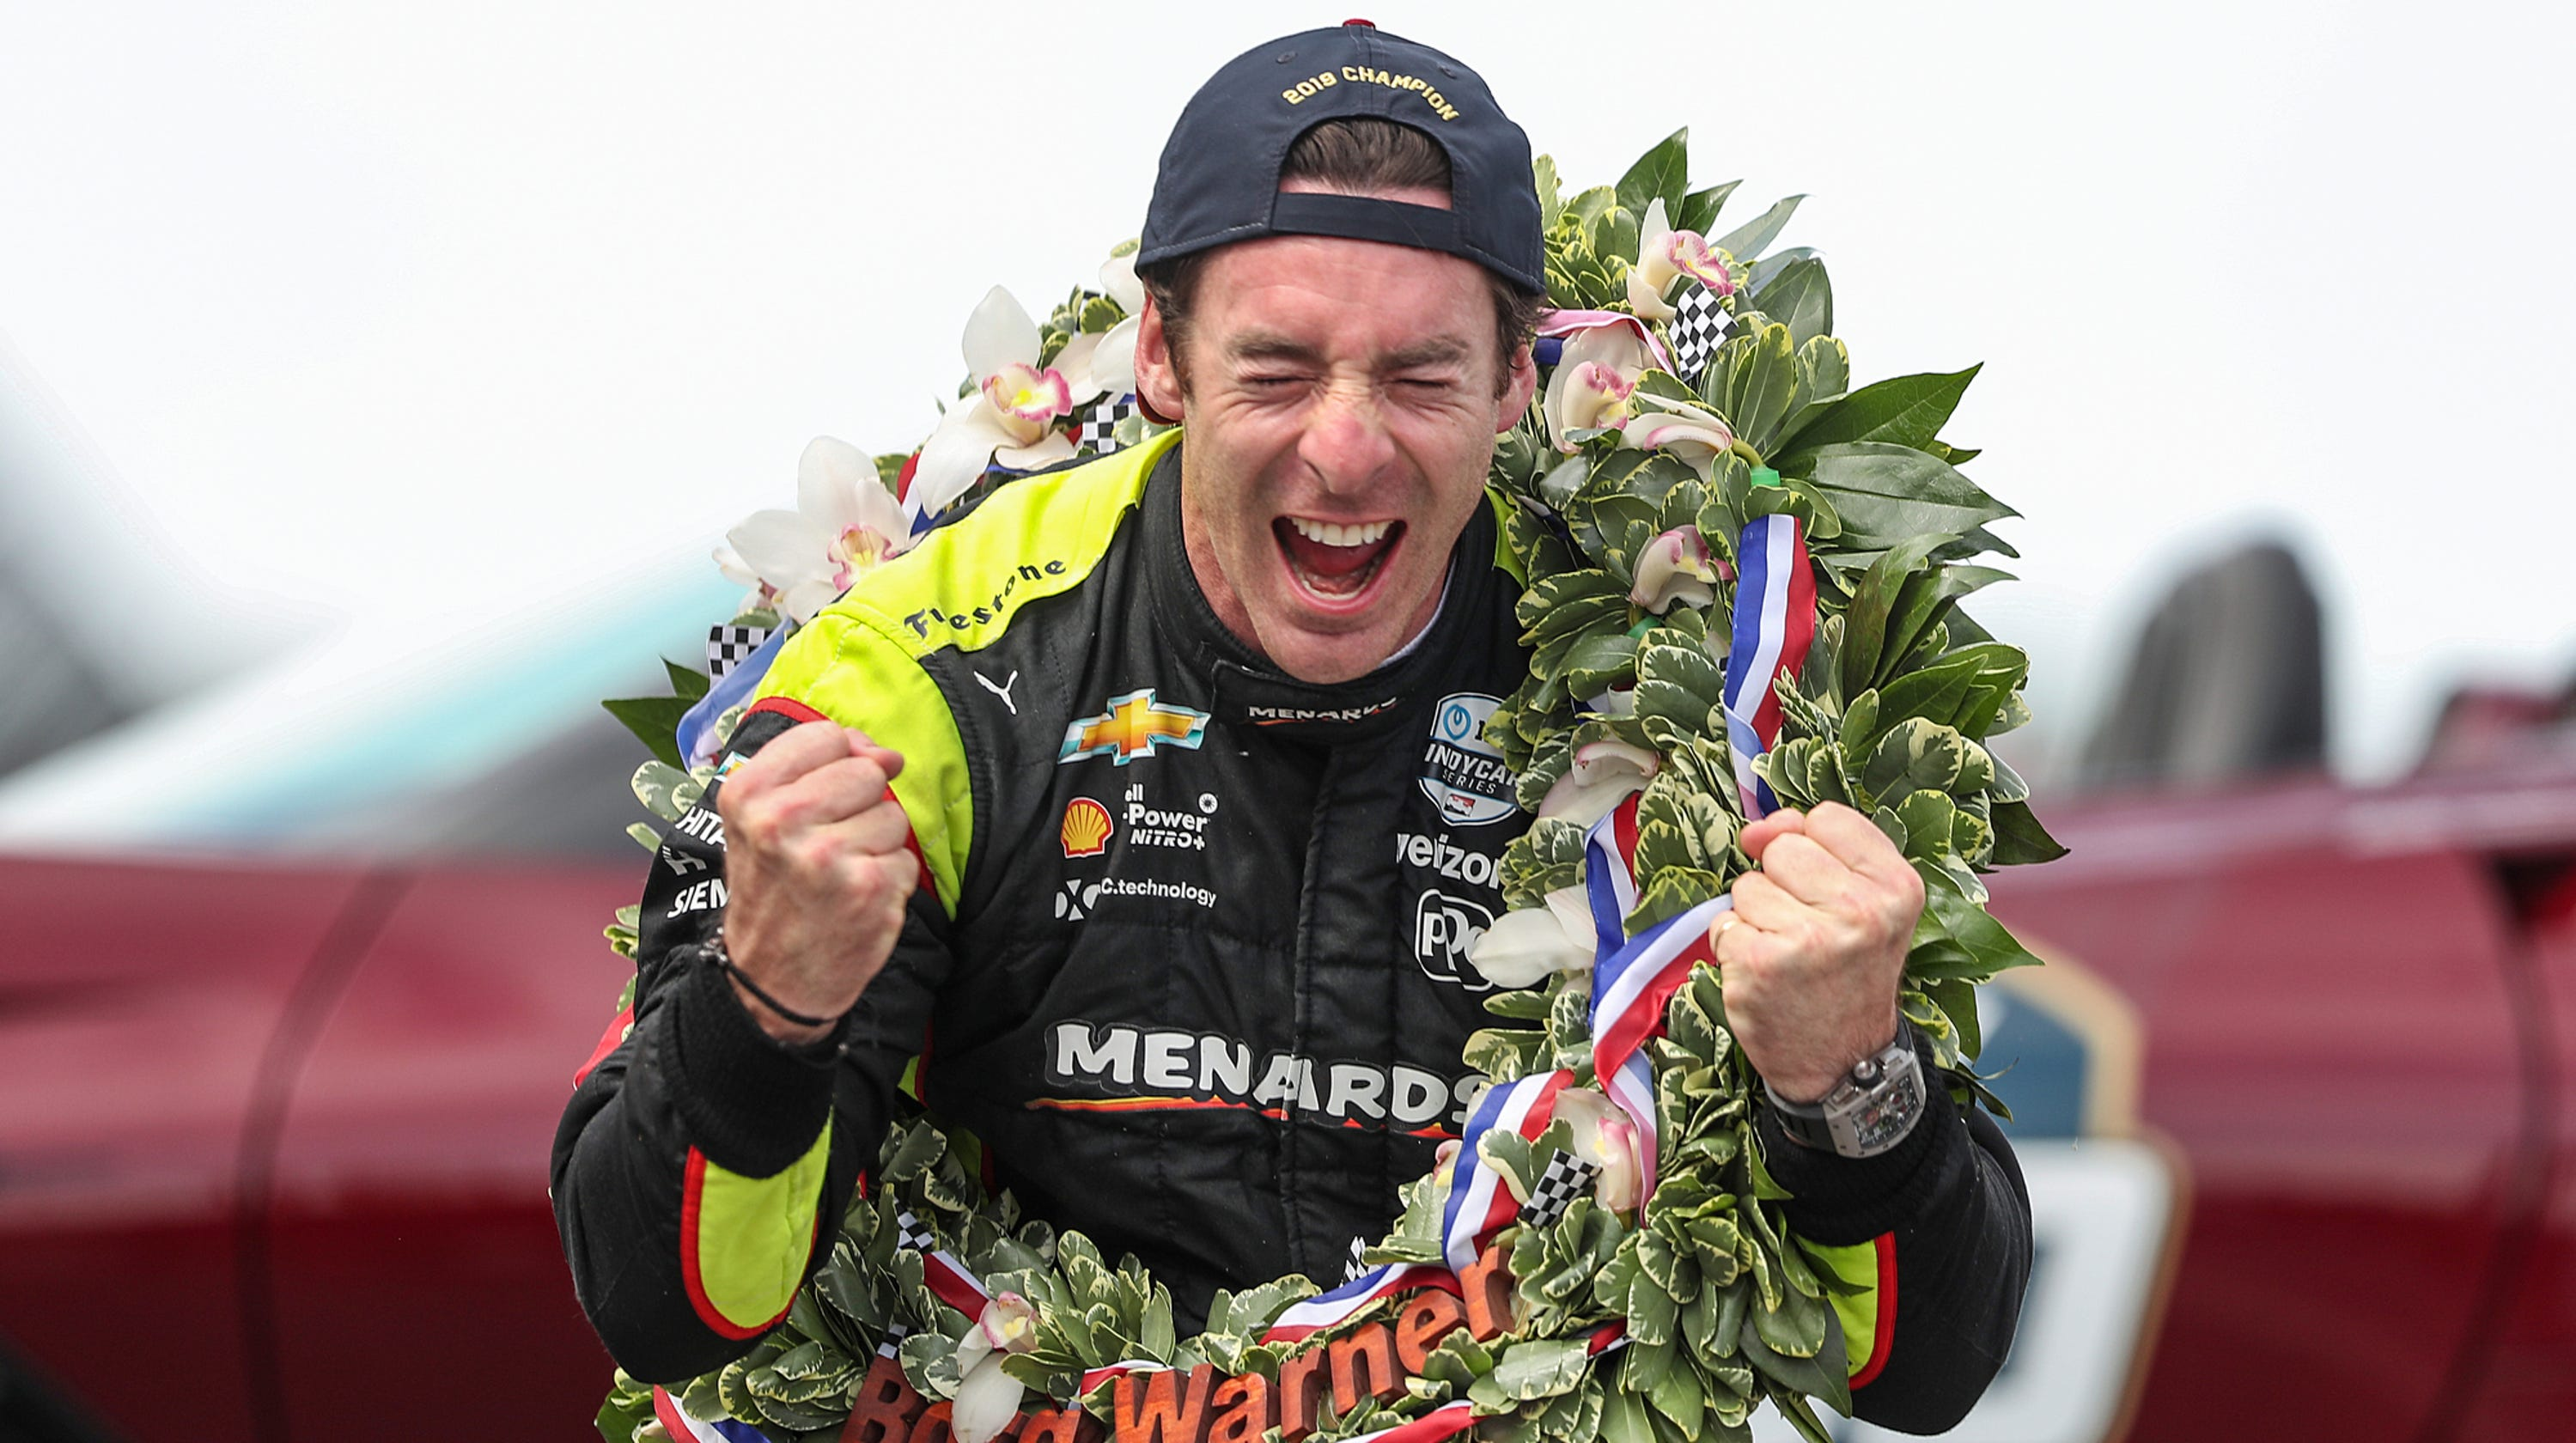 How Many Laps In Indy 500 >> Indy 500 Live Blog Updates Simon Pagenaud Edges Alexander Rossi